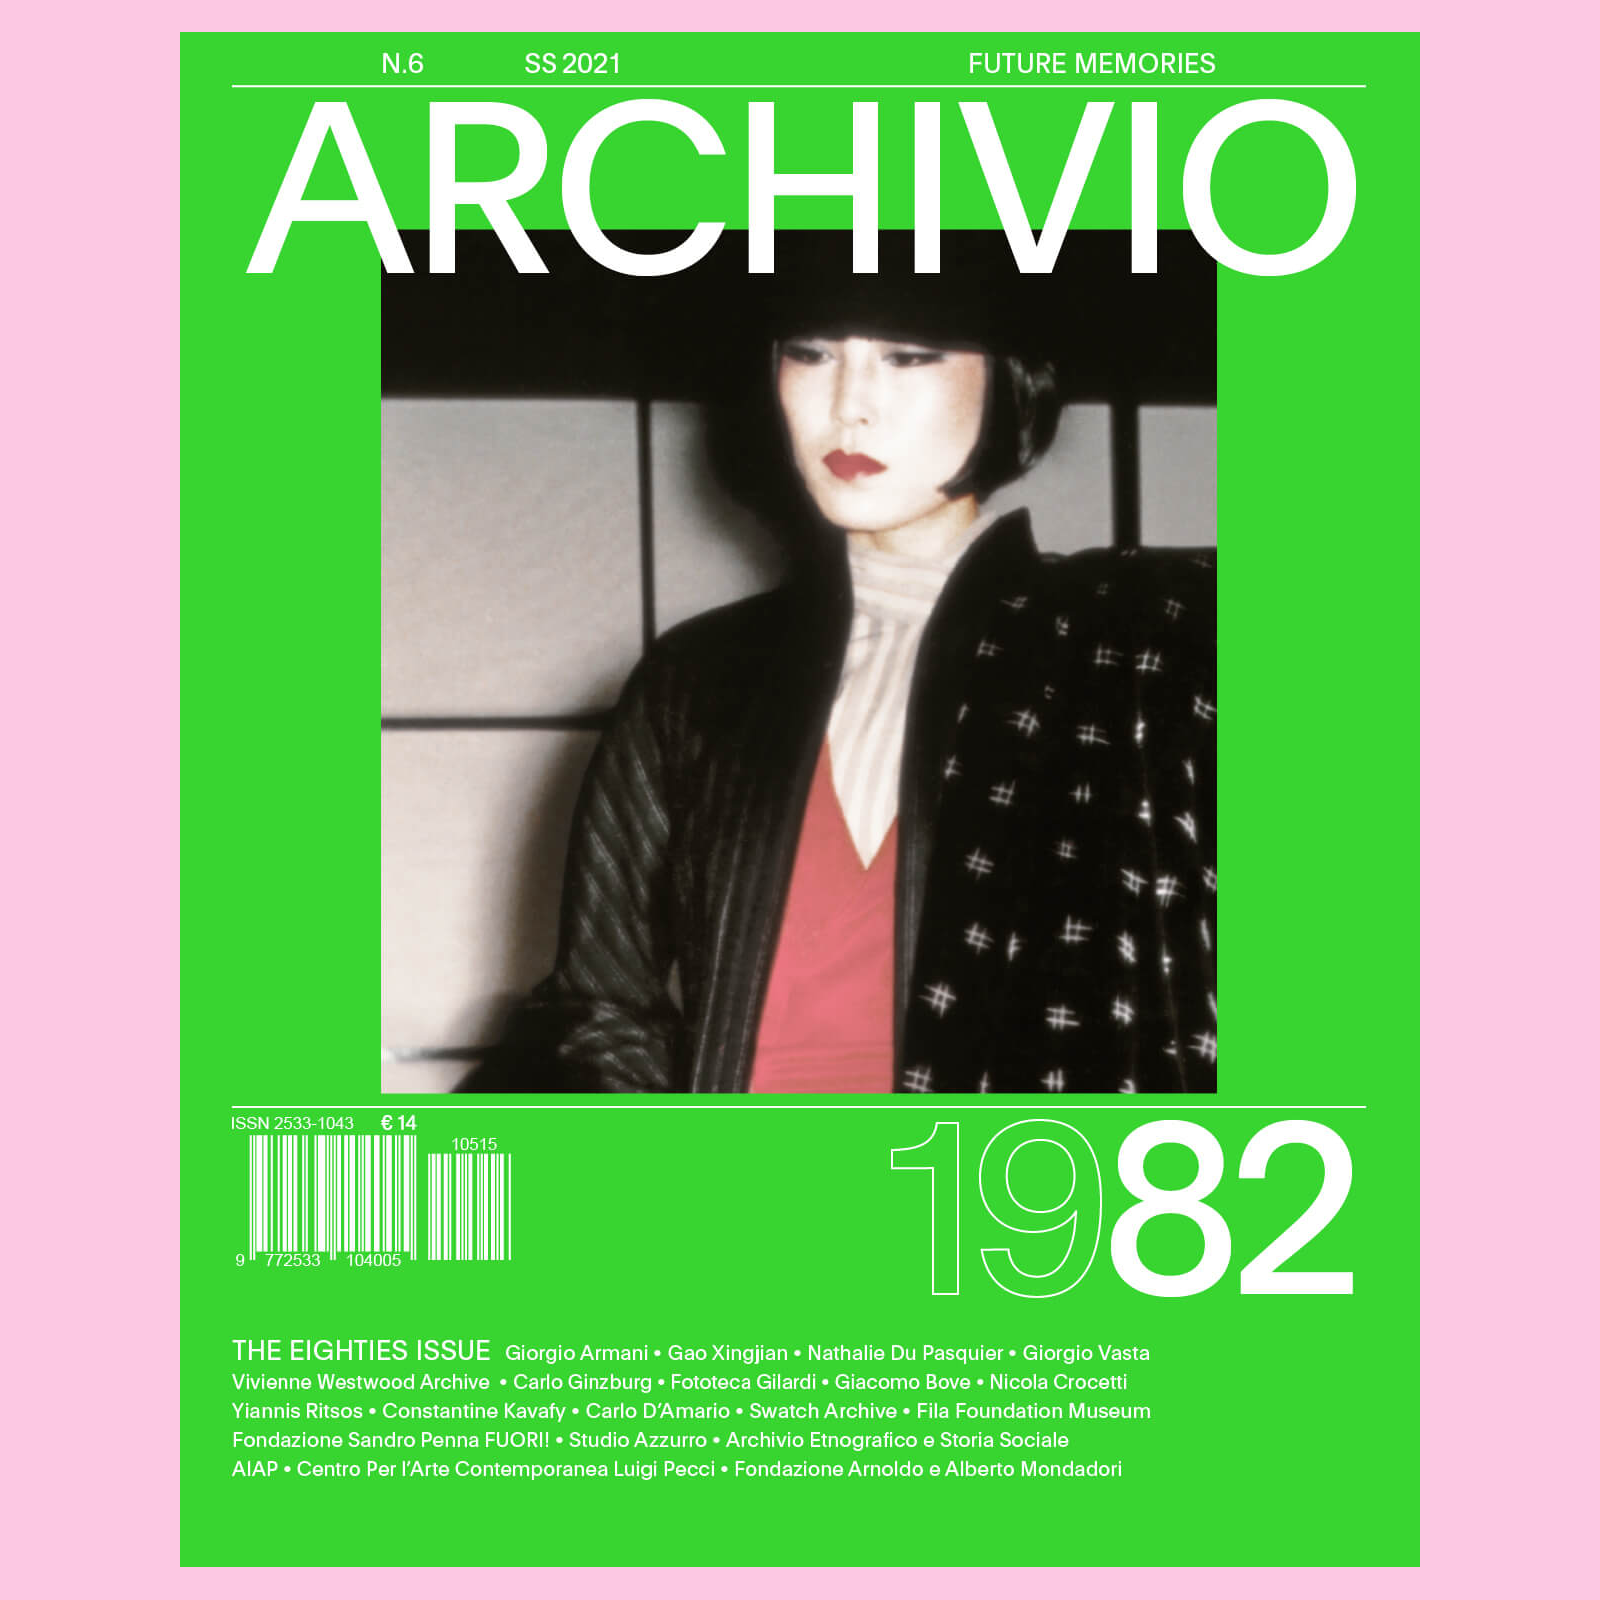 Issue 6: The Eighties Issue